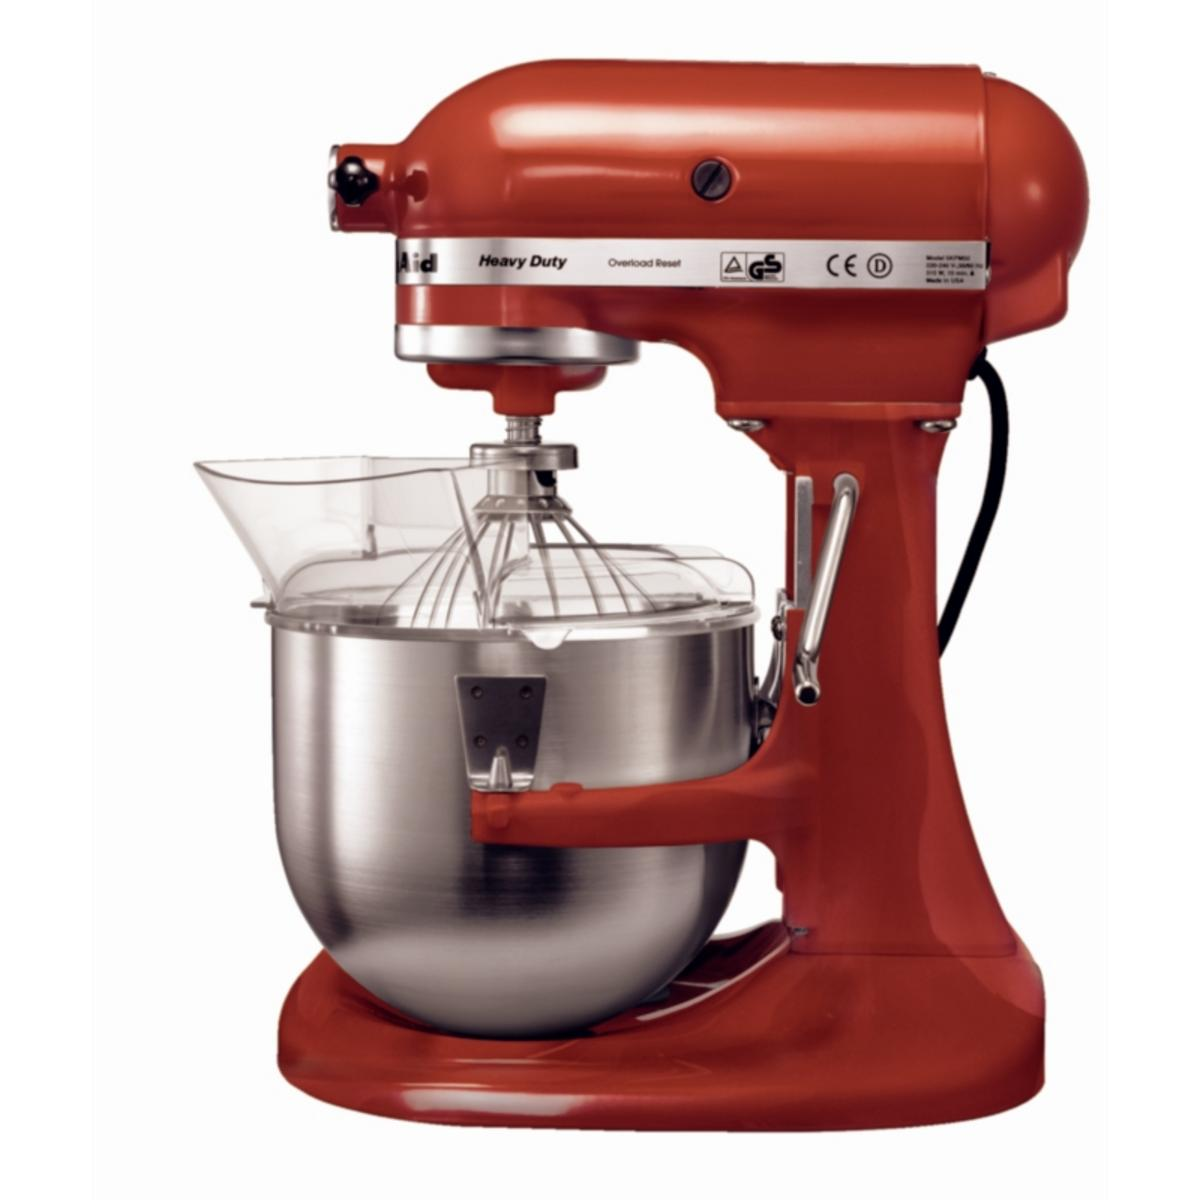 Excellent Red KitchenAid Mixer in Kitchen 1200 x 1200 · 67 kB · jpeg